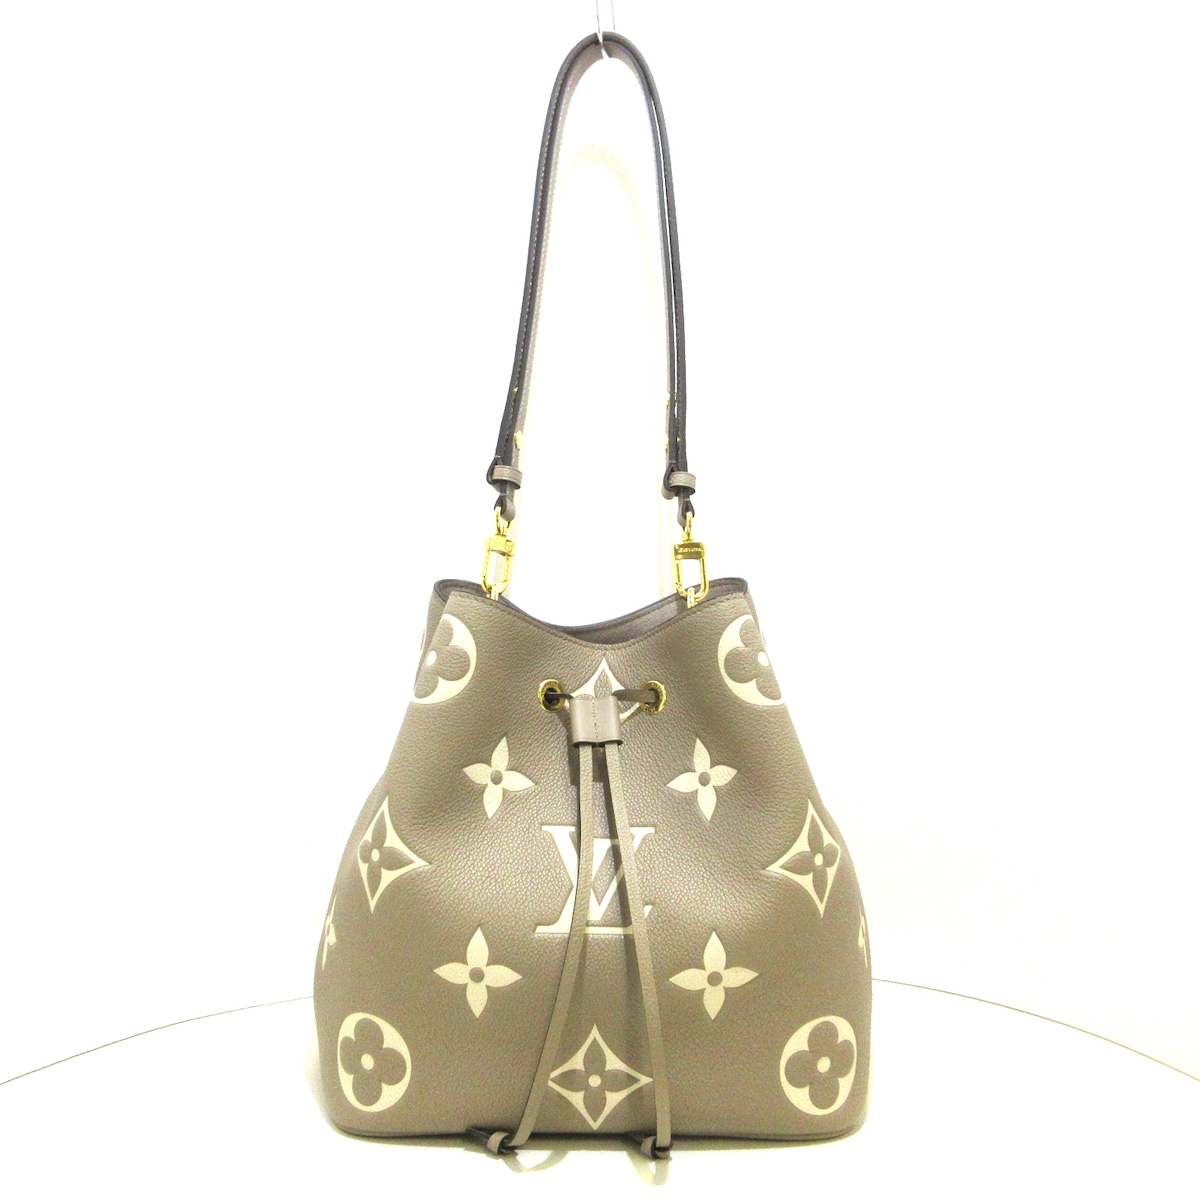 LOUIS VUITTON(ルイヴィトン)のネオノエMM